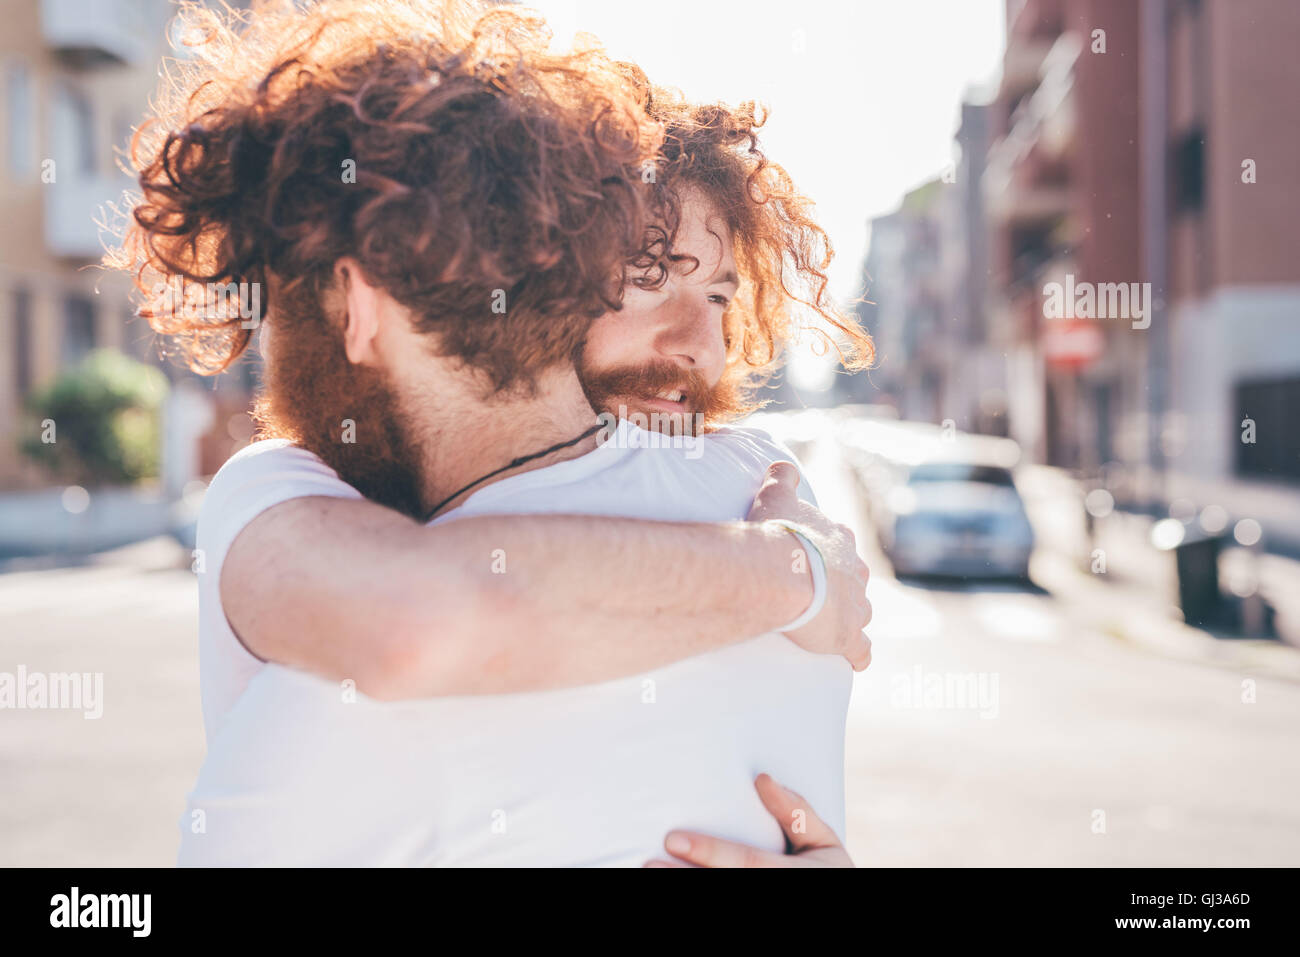 Young male hipster twins with red hair and beards hugging on city street Stock Photo